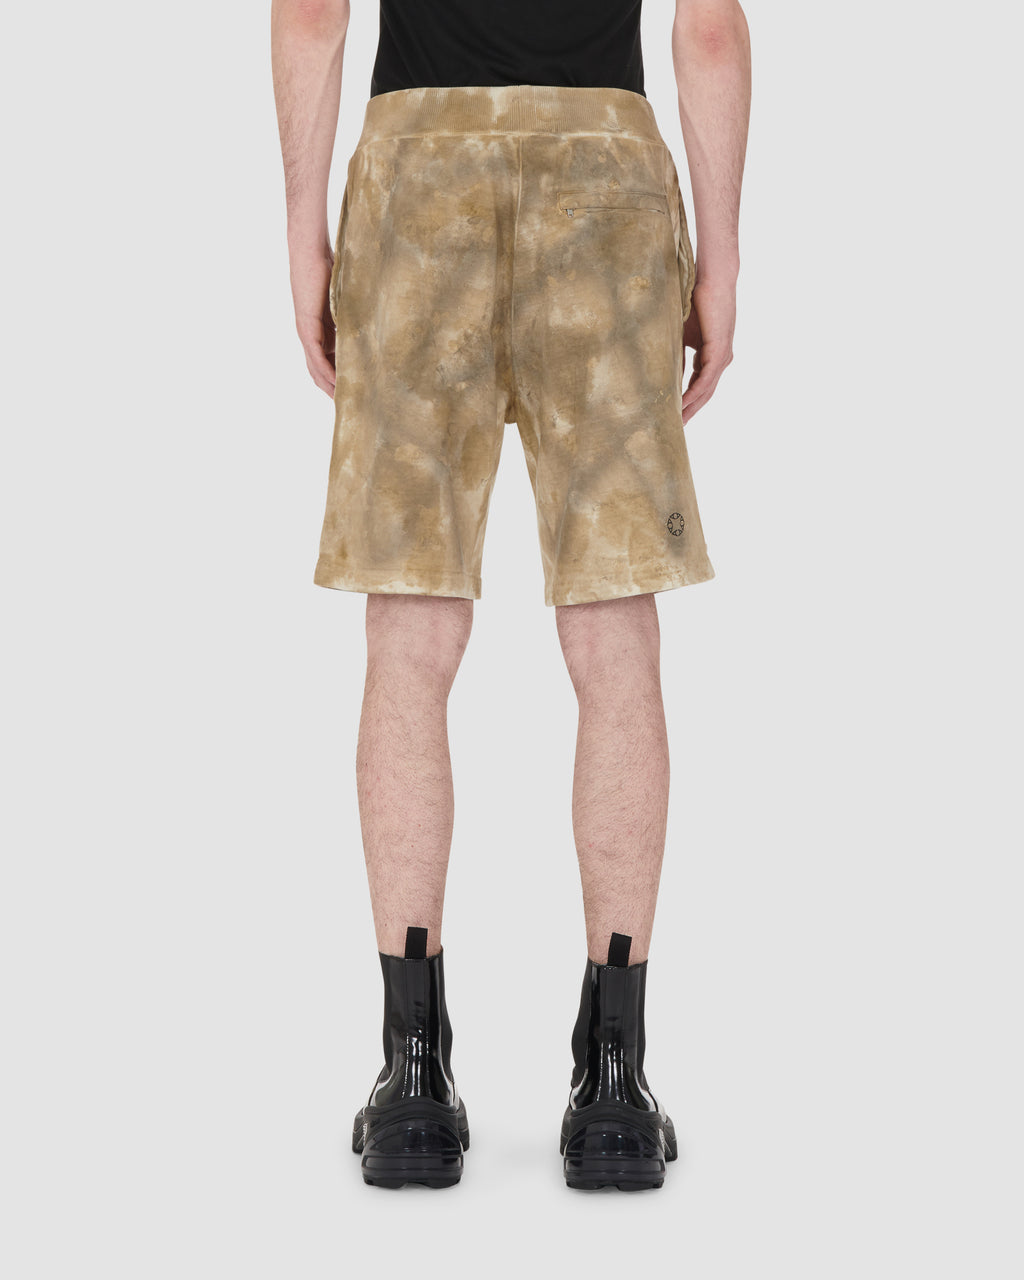 1017 ALYX 9SM | SHORTS W PRINT | Pants | DARK SAND, Google Shopping, Man, MEN, Pants, S20, S20 Drop II, SHORTS, Trousers